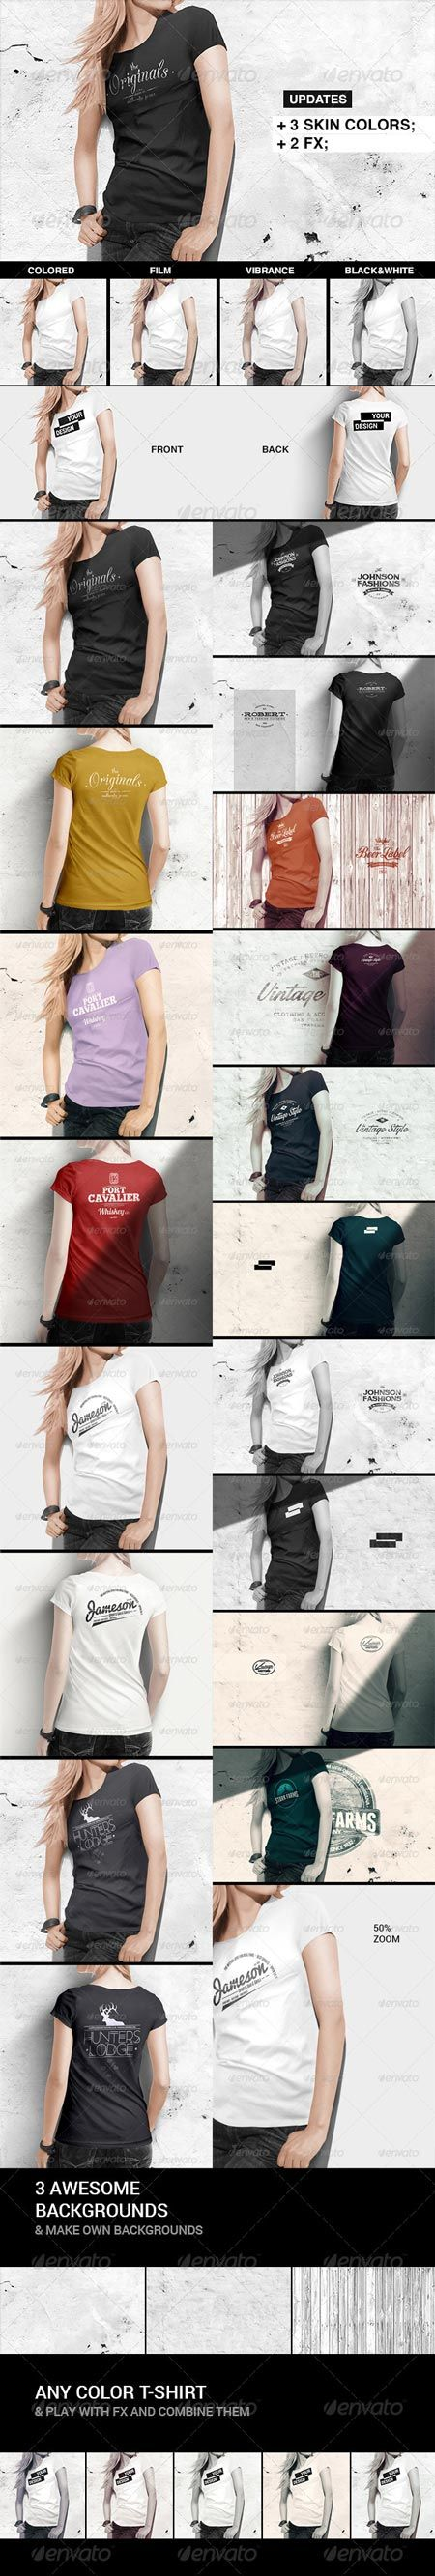 Women T-Shirt Mock-Up 8504847 » Free Special GFX Posts Vectors AEP Projects PSD Web Templates